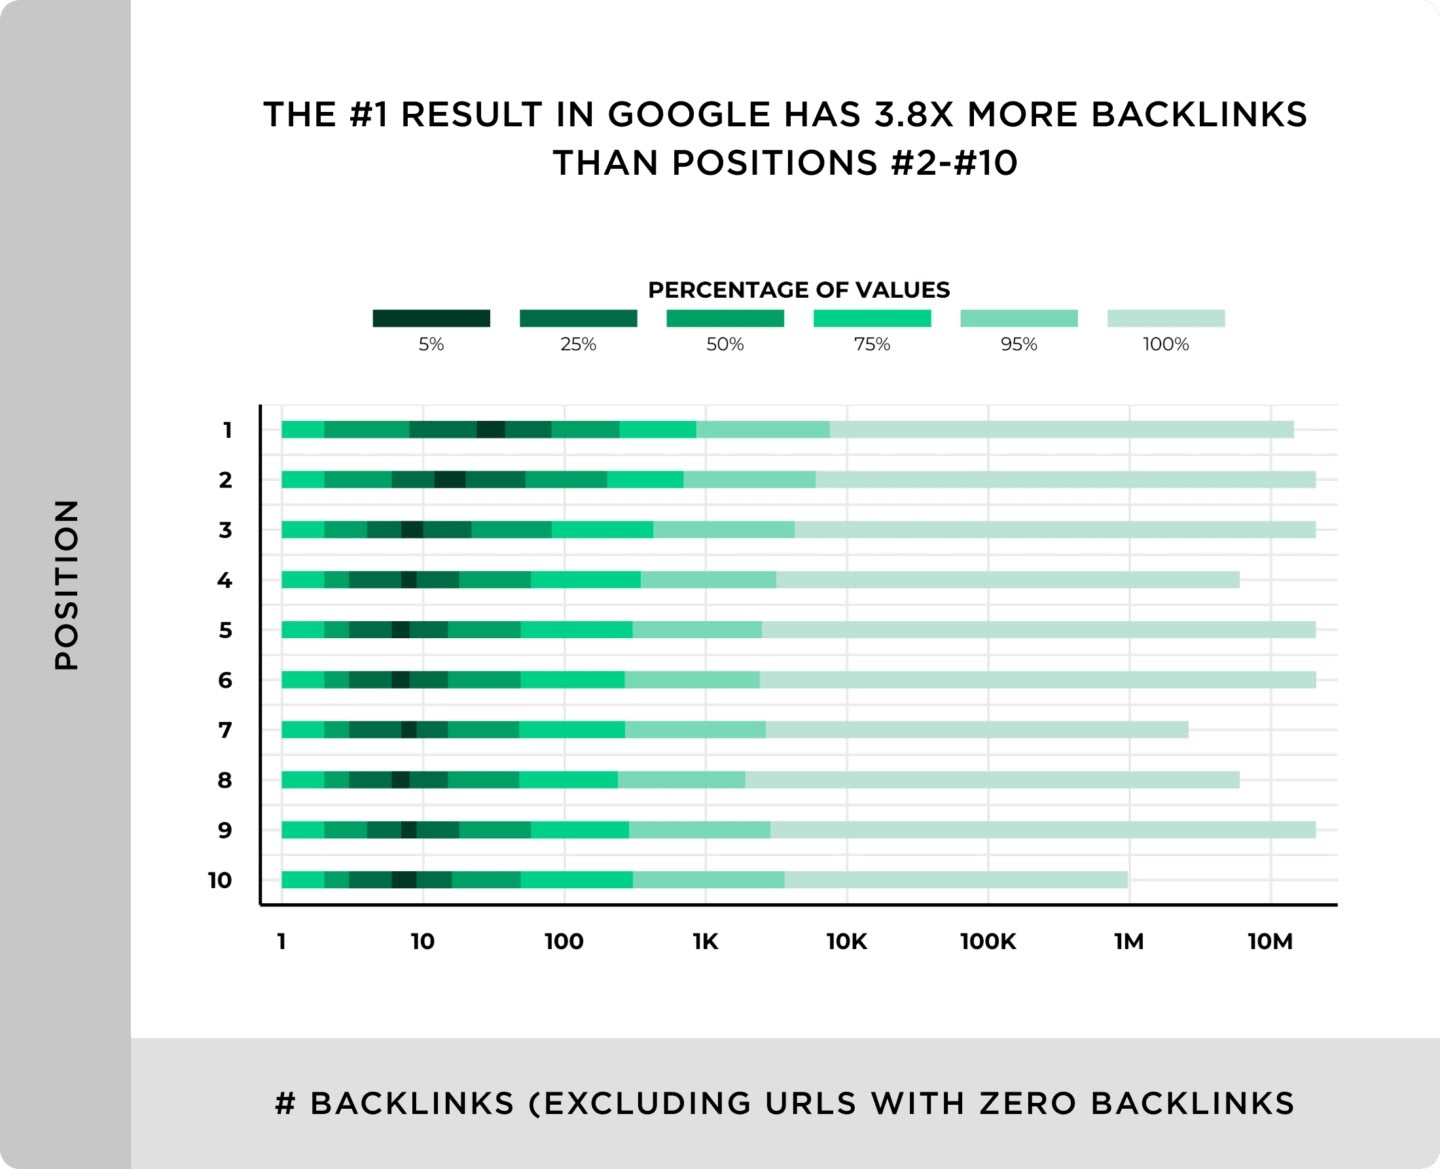 chart displaying #1 result in google has 3.8x more backlinks than positions #2-#10